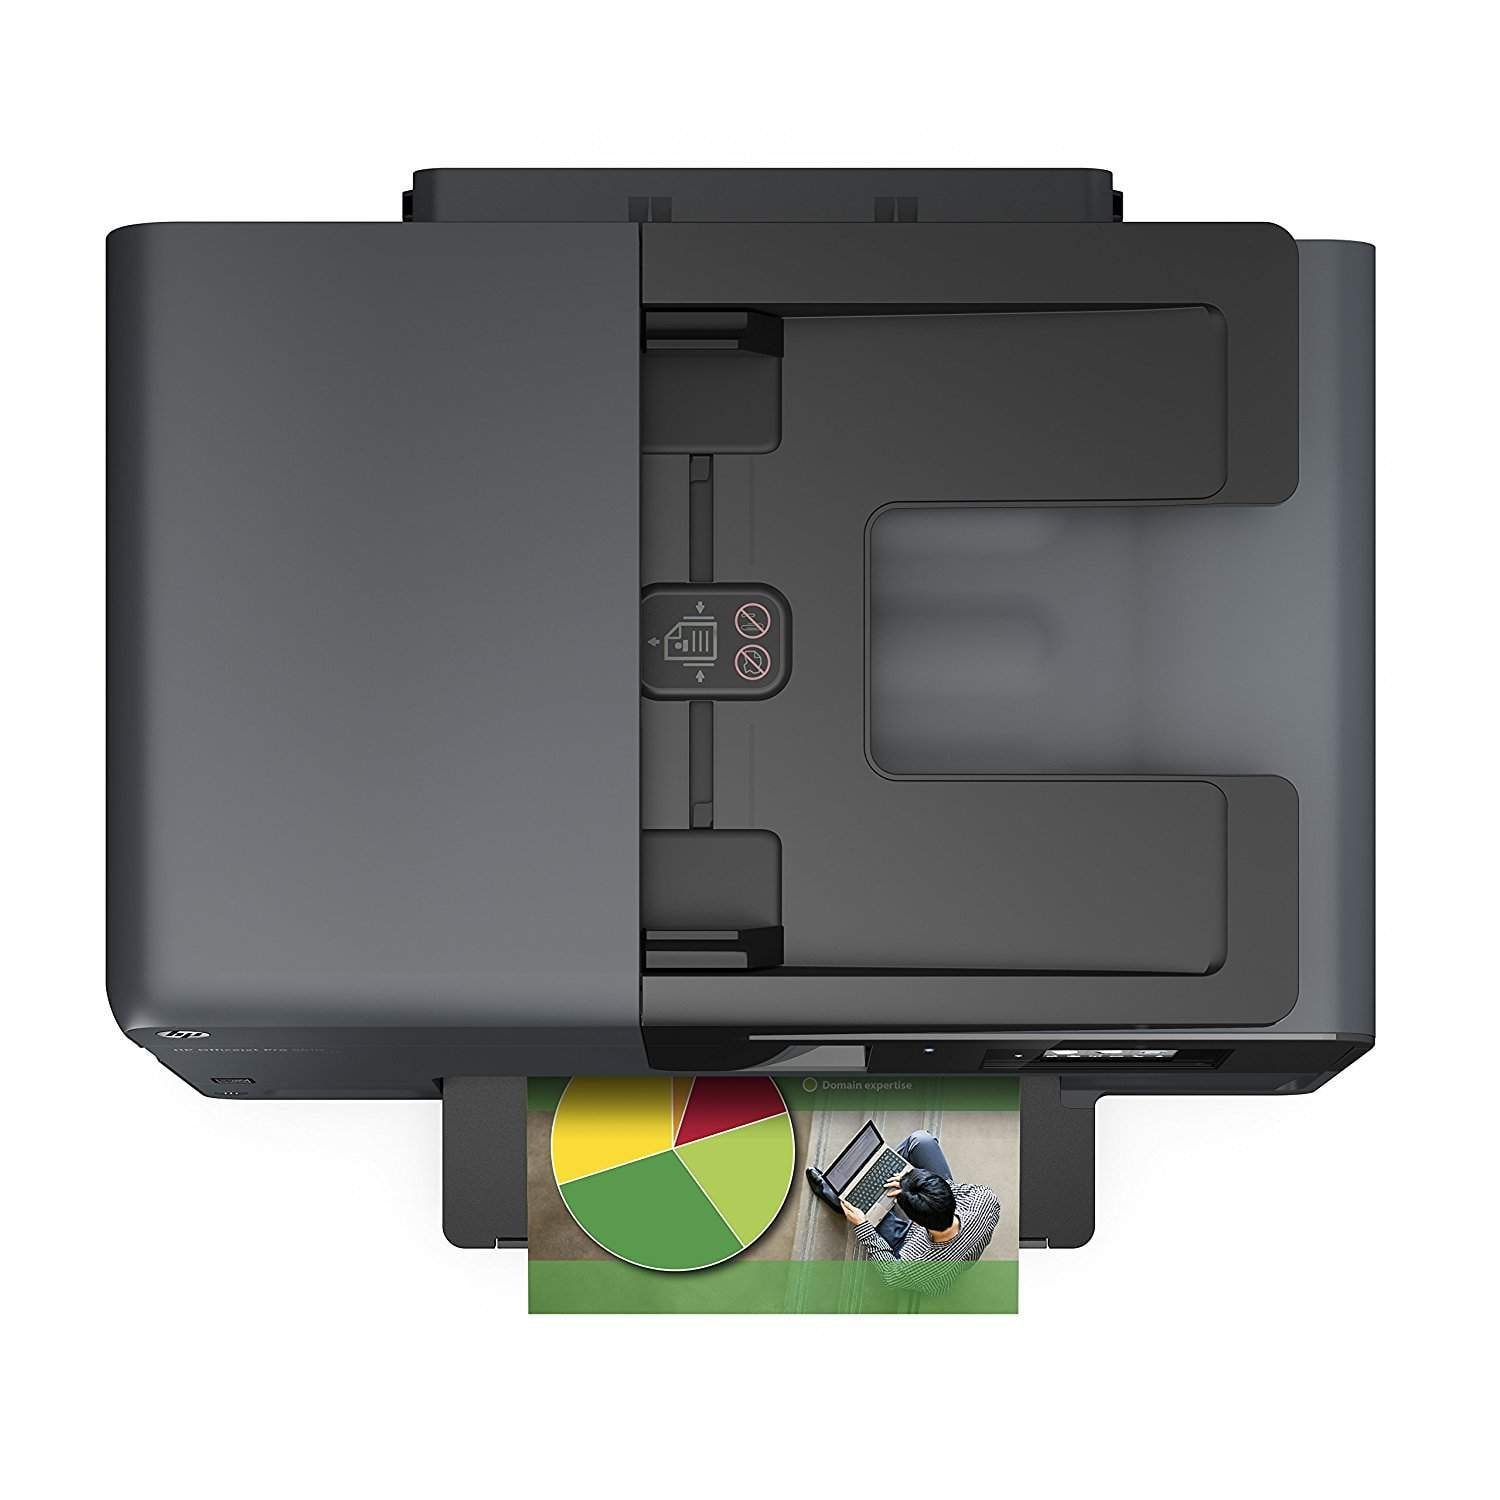 HP Officejet Pro 8610 Multi-Function Color All In One Printer (Black)